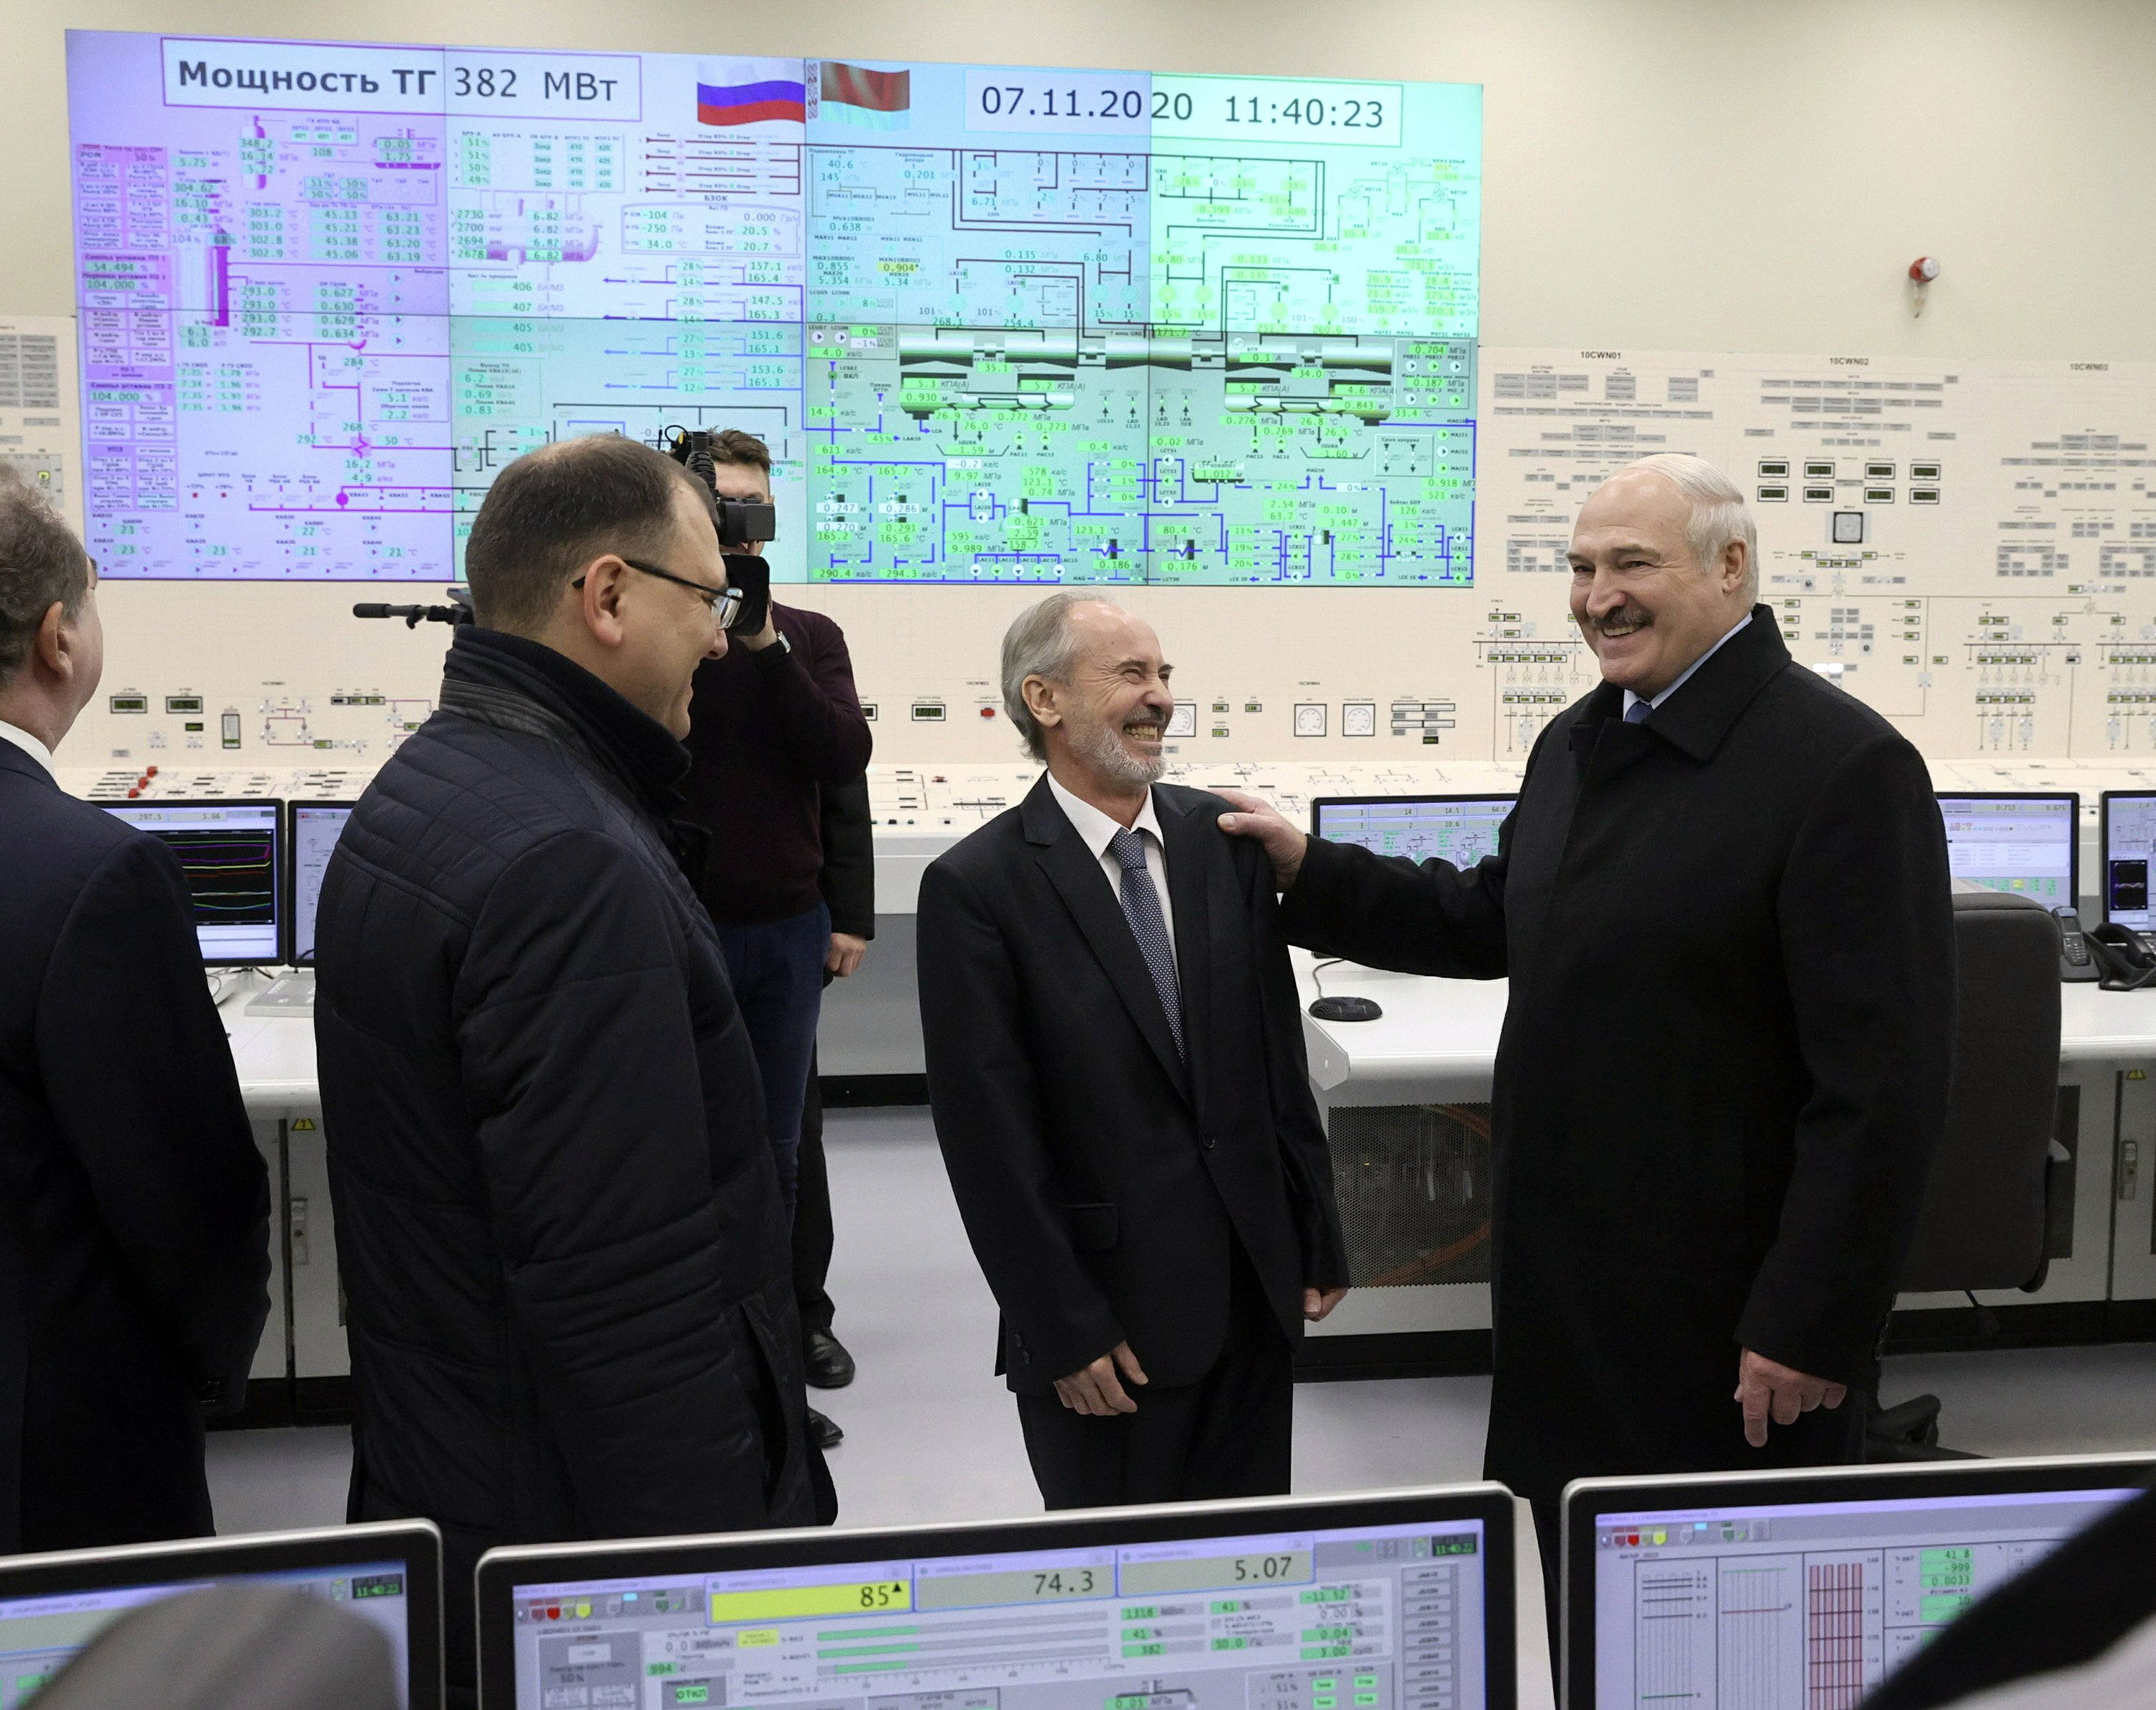 Belarus opens nuclear plant opposed by neighboring Lithuania